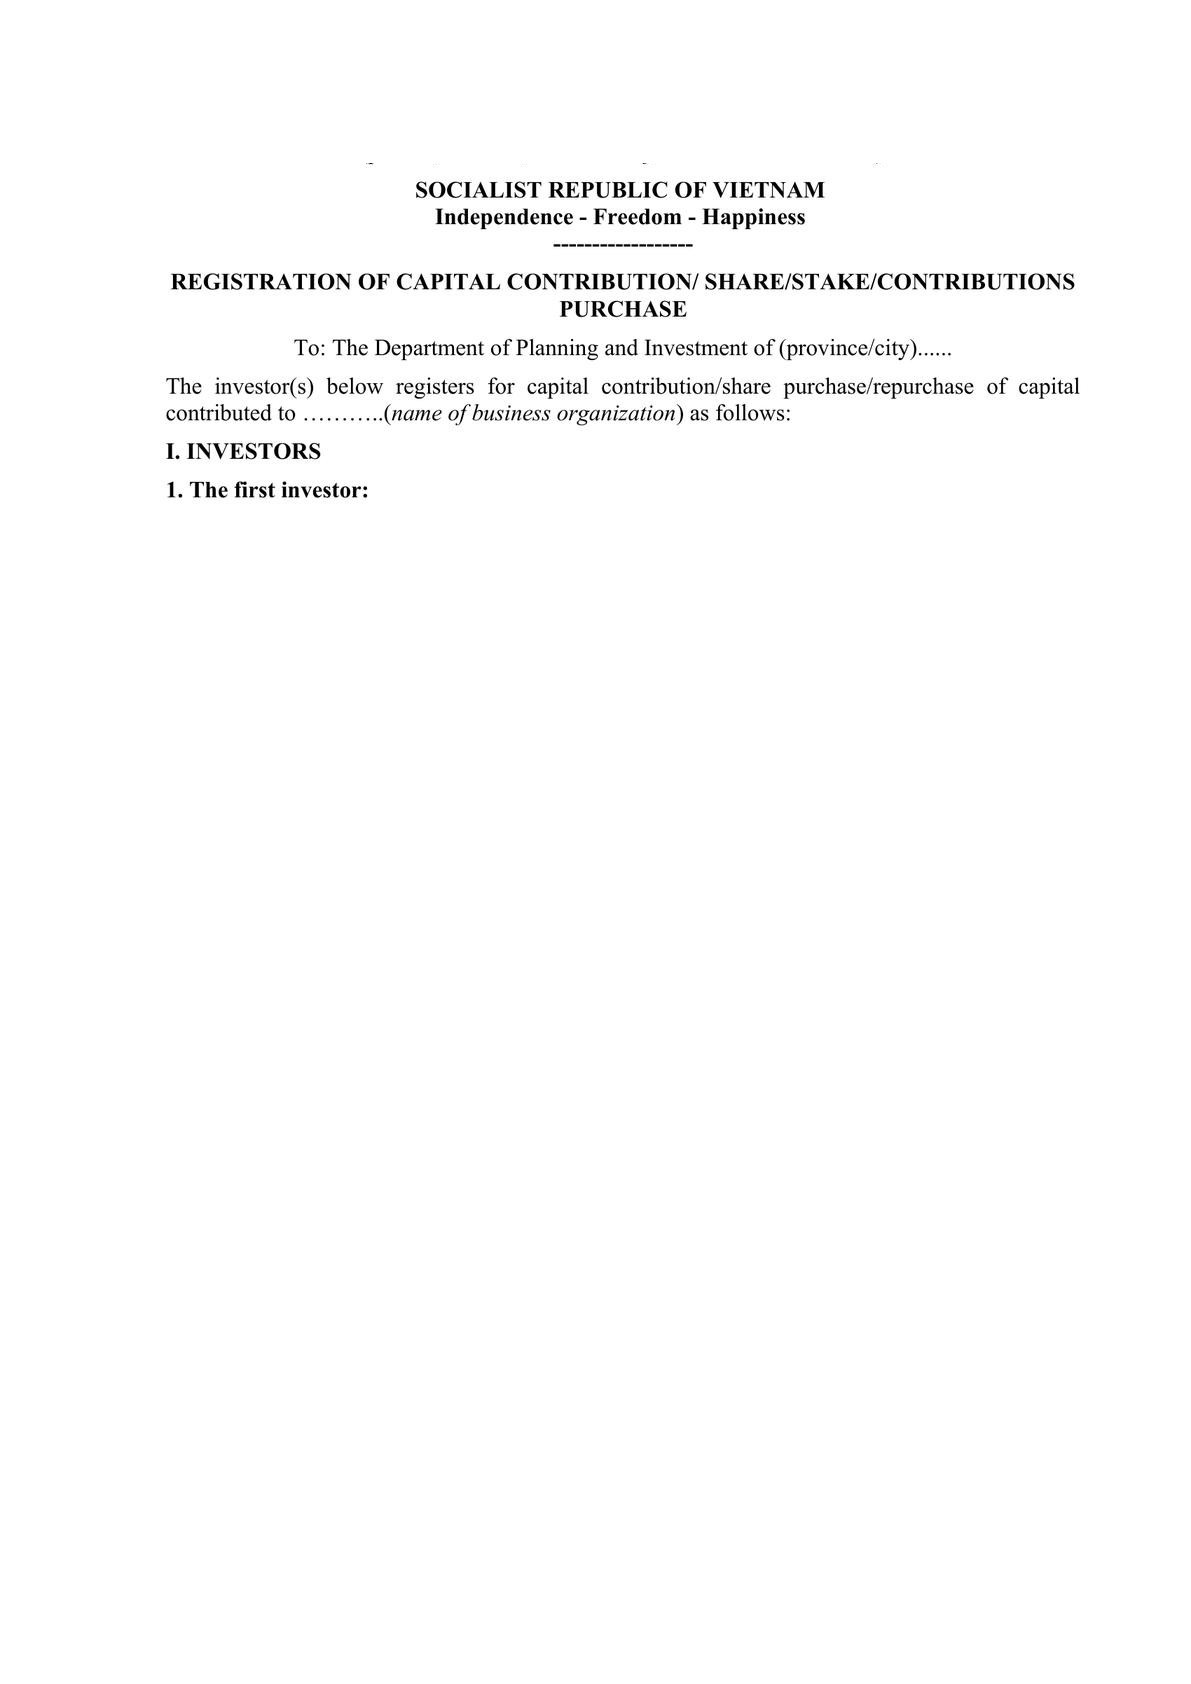 Notification template for approval M&A in Vietnam (in Vietnamese and English)-0